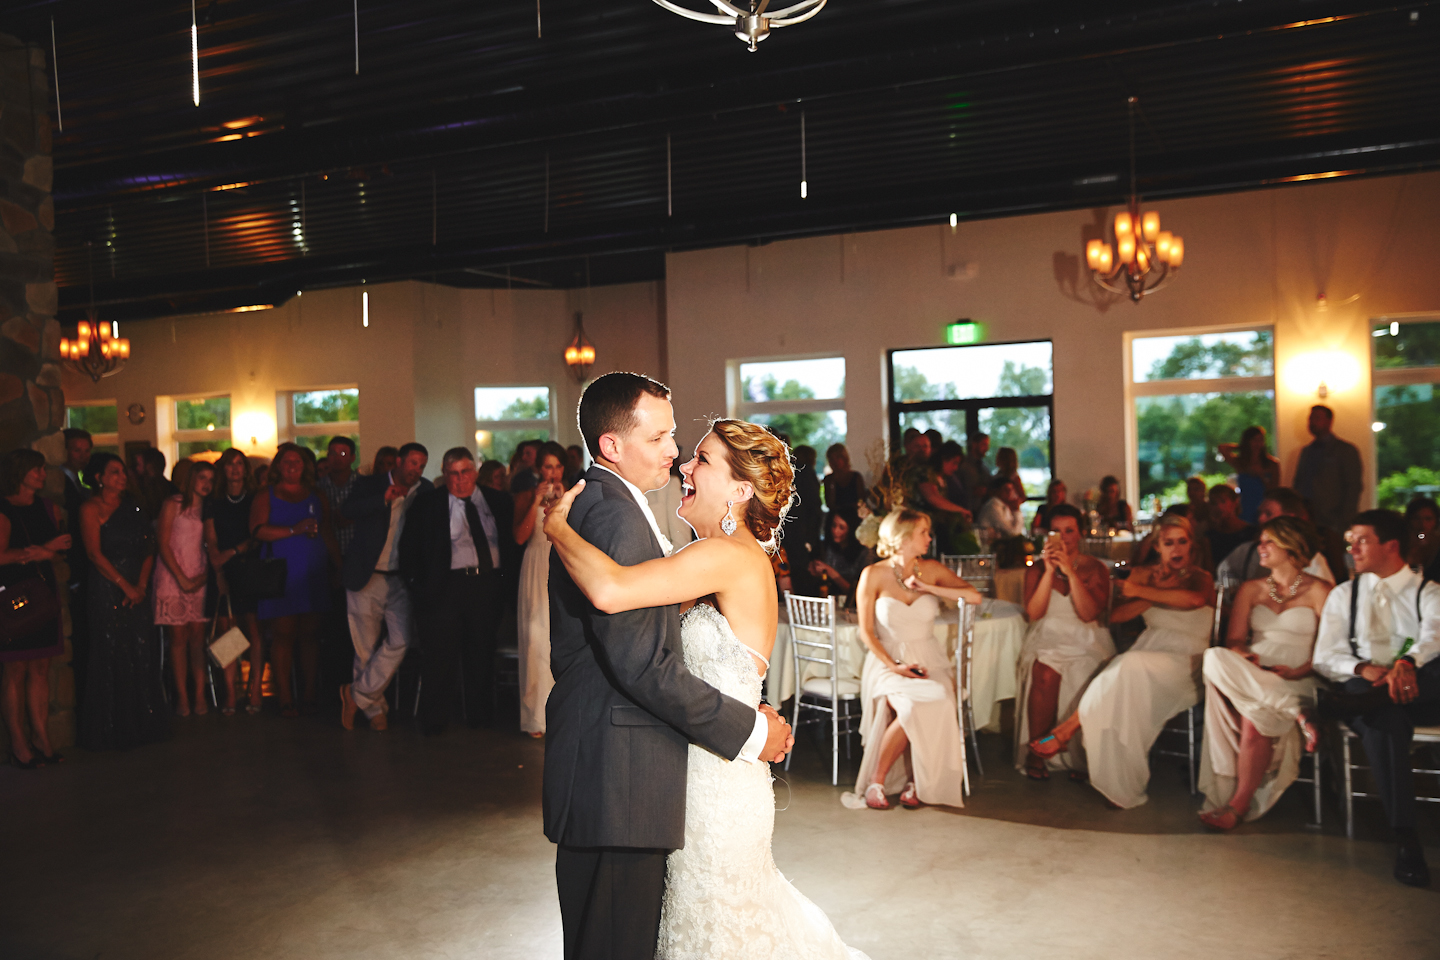 Venue: Winehaven Winery and Vineyard |  Photography:  Justin Mark Photography  | Videography:  Virtuoso Video Productions  |  Hair:  Kari  Kranston at   Mask Hair Design  |  Make-Up:  Karen Wagner   |  Ceremony and Social Hour Music :  Hanson & Hoyt  |  Dinner/Reception DJ:    Instant Request  |  Catering :    Mintahoe Catering & Events  | Late Night Snack:  Pizza Man  | Photobooth:  The Traveling Photo Booth  | Officiant:  Cristopher (Cris) Anderson  |  Transportation:  Mary Ann's Tours  |Florist: Bloom by Design